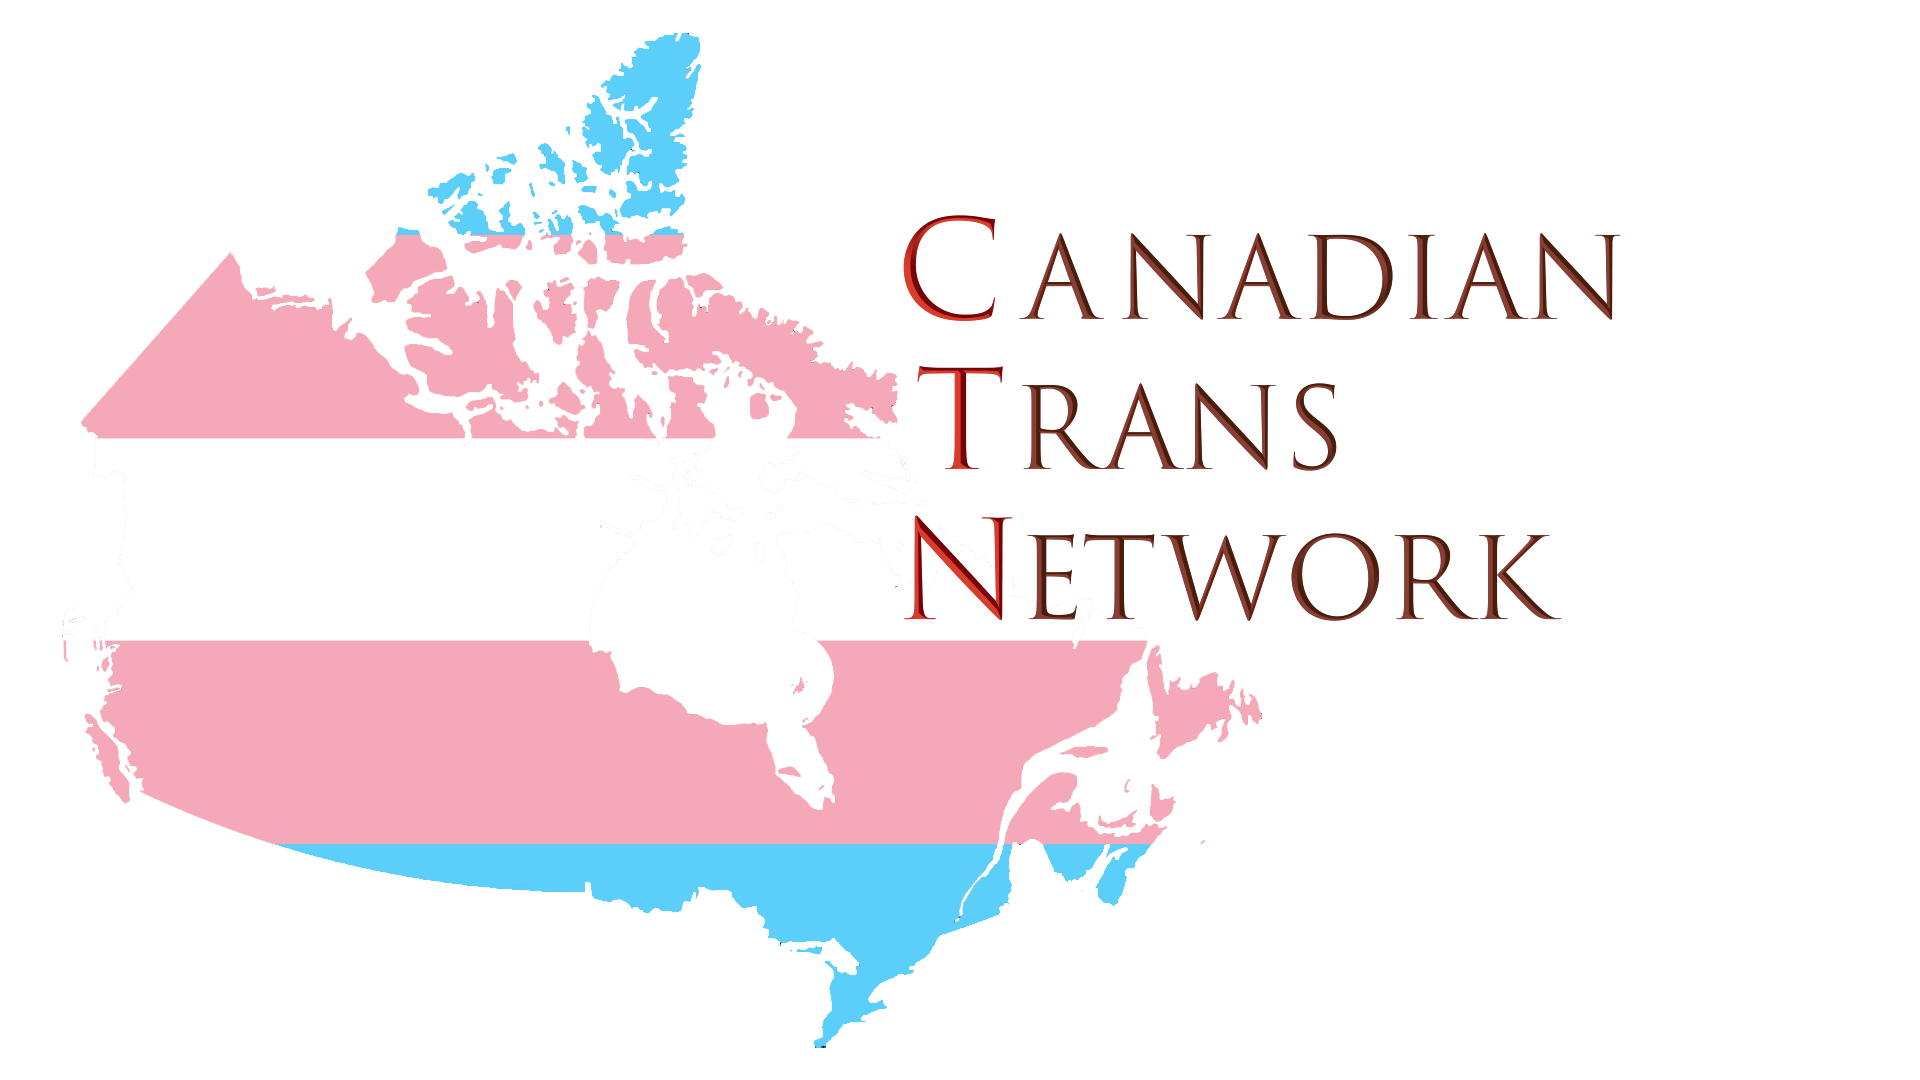 Canadian Trans Network